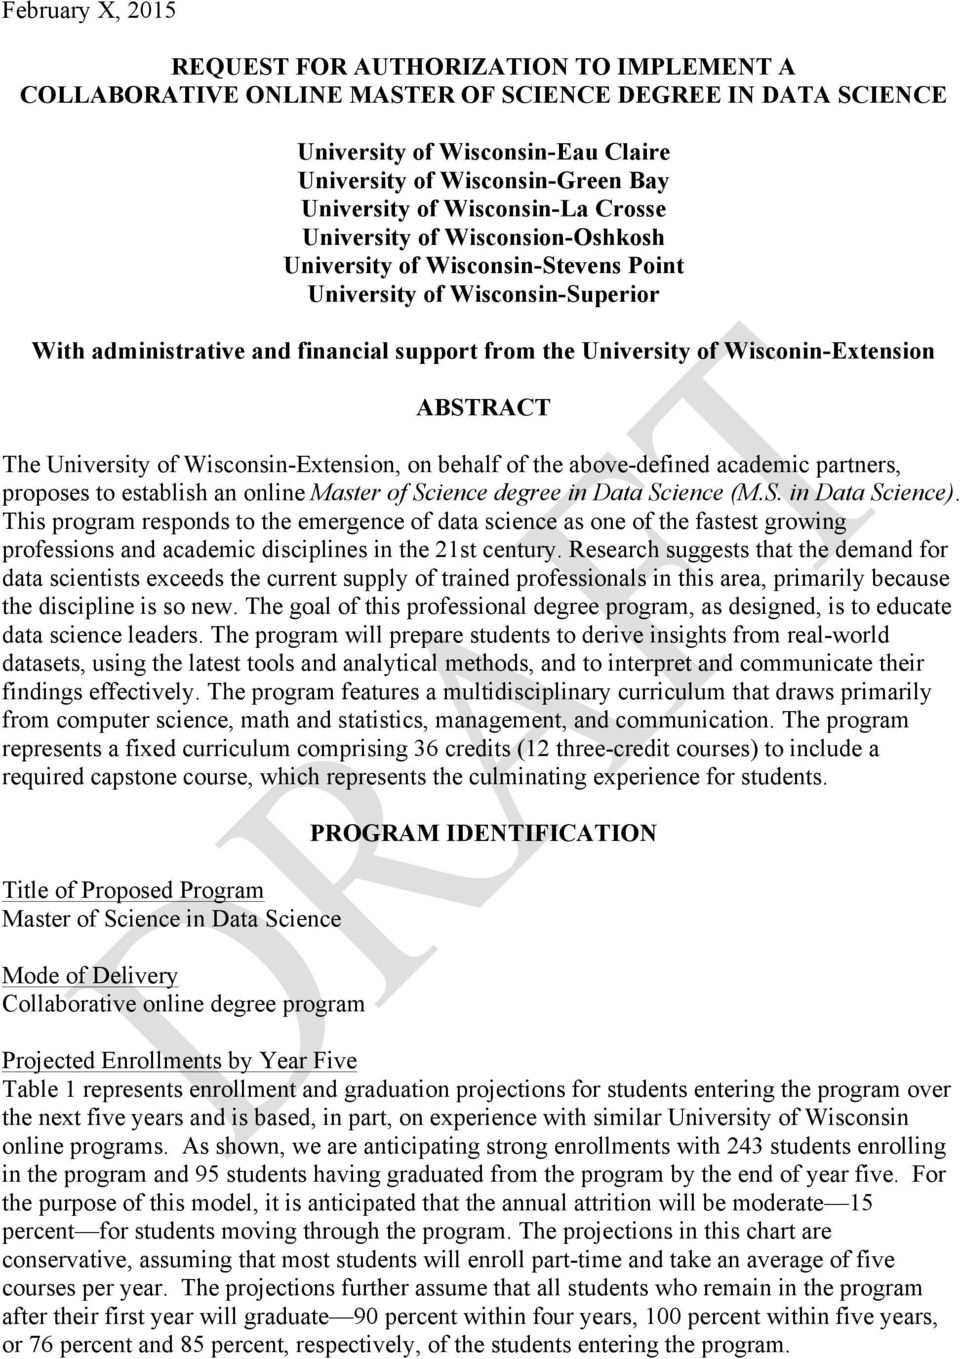 Wisconin-Extension ABSTRACT The University of Wisconsin-Extension, on behalf of the above-defined academic partners, proposes to establish an online Master of Science degree in Data Science (M.S. in Data Science).